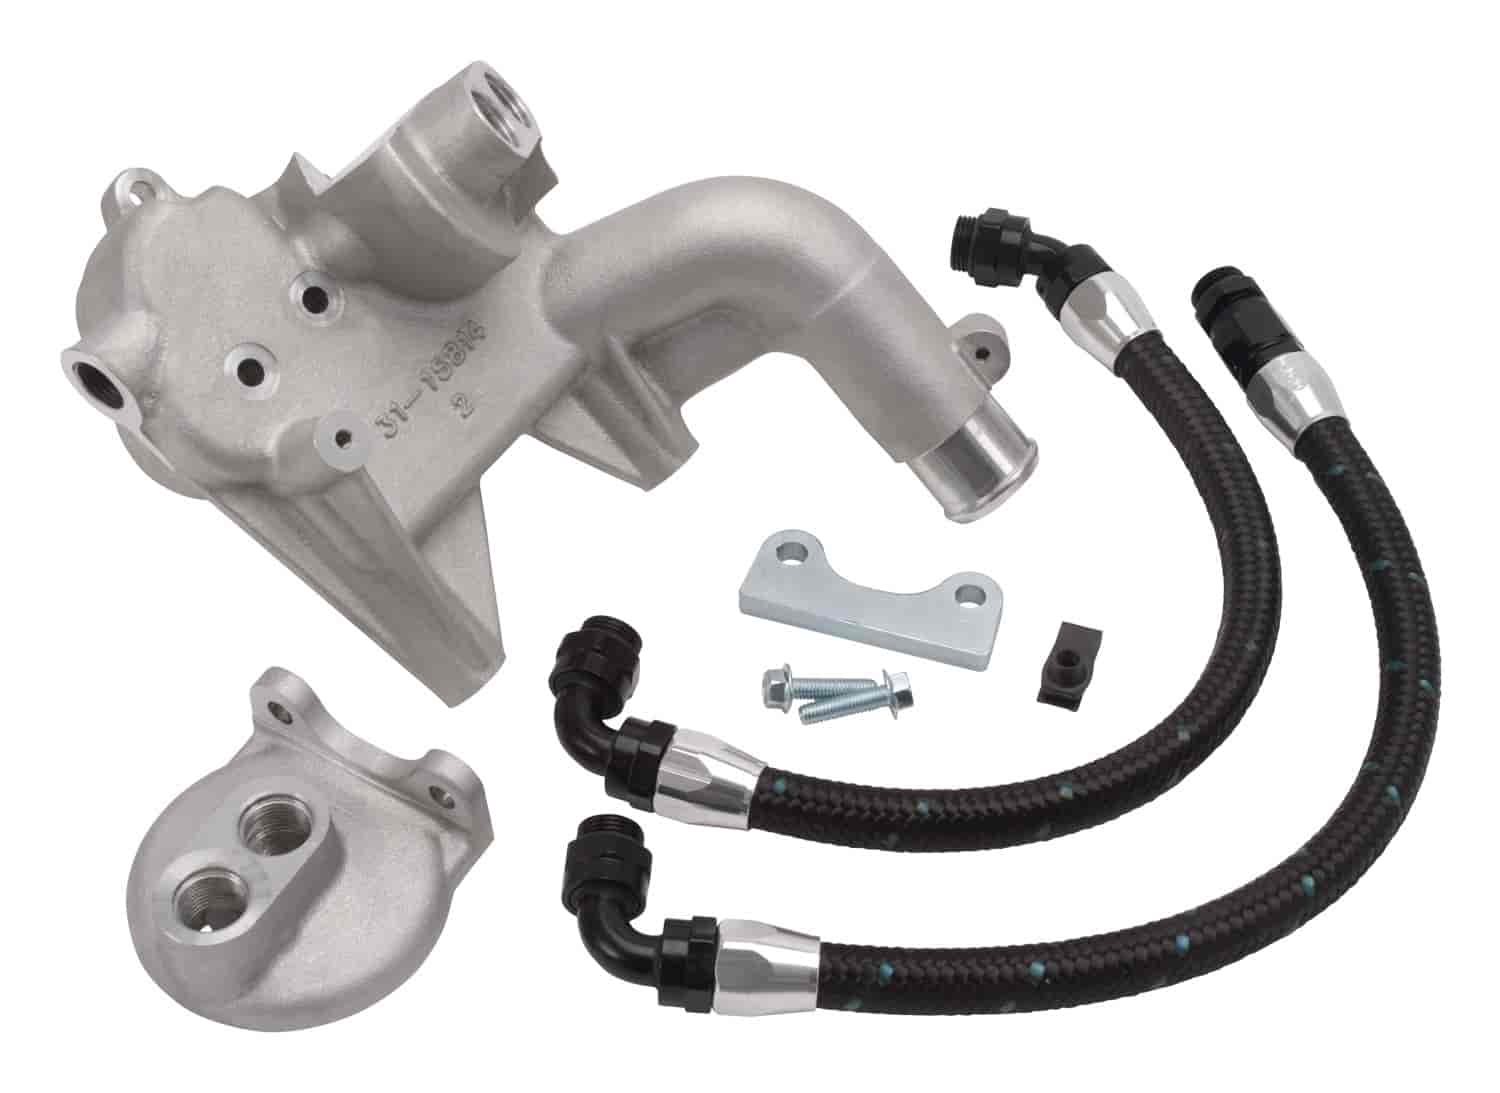 Edelbrock 15834 - Edelbrock E-Force Supercharger Kit For Ford F-150